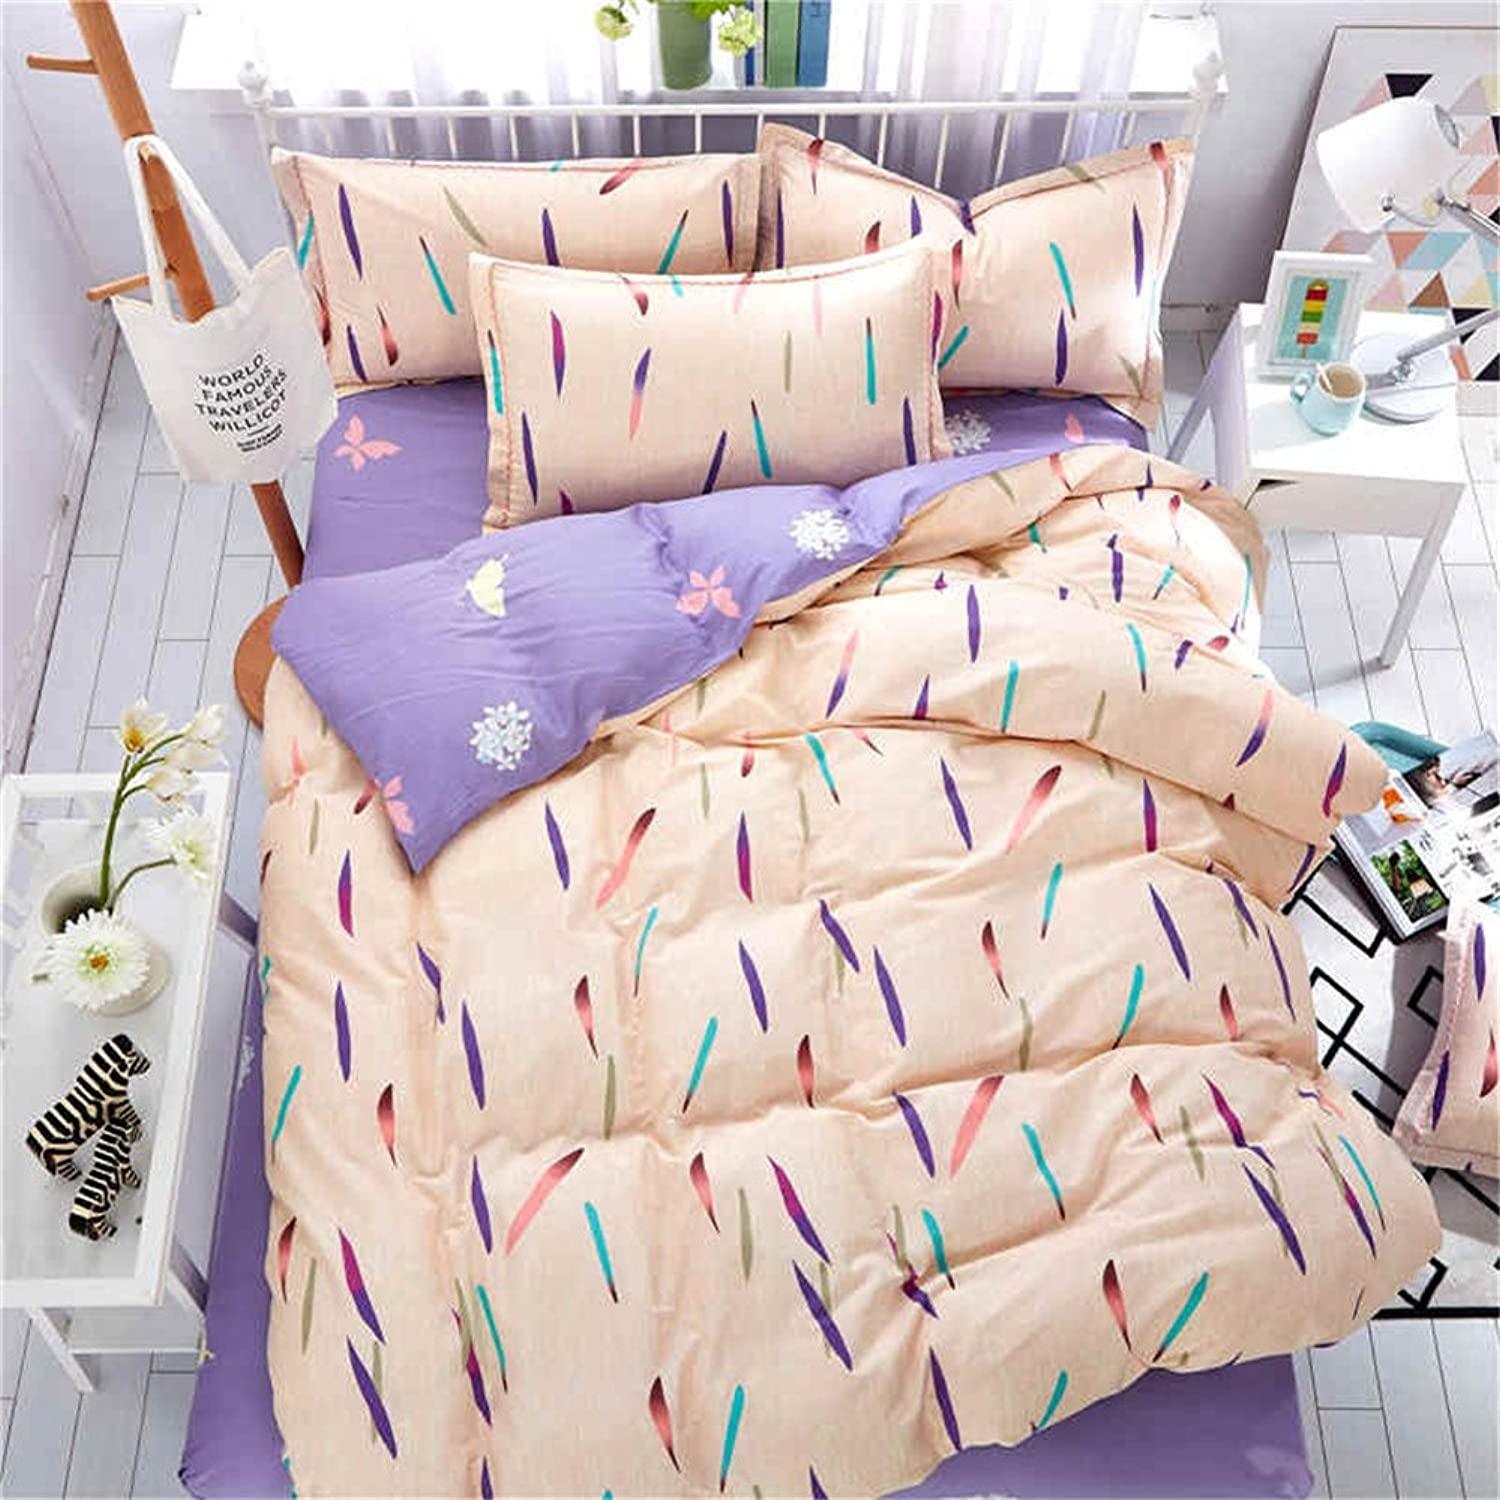 Auvoau Kids Bedding for Girls and Boys Cotton Duvet Cover Set Fox Bedding Cartoon Bedding Set 4 Piece (2, Twin)